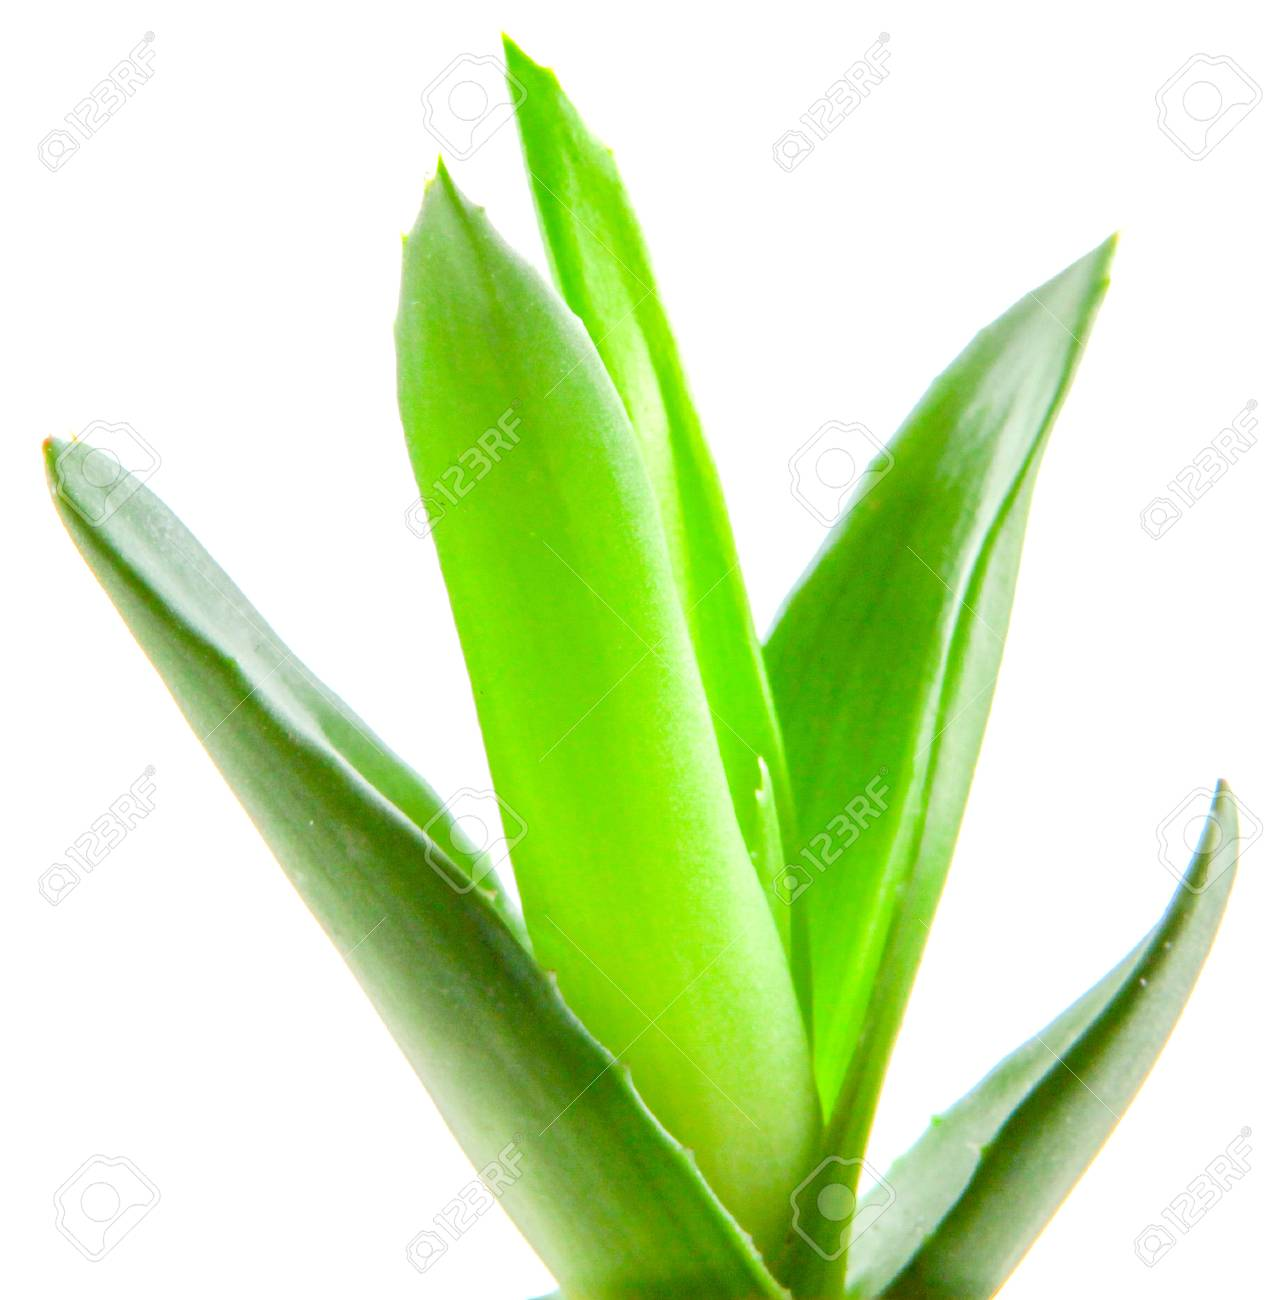 aloe vera plant isolated on white background banque d'images et